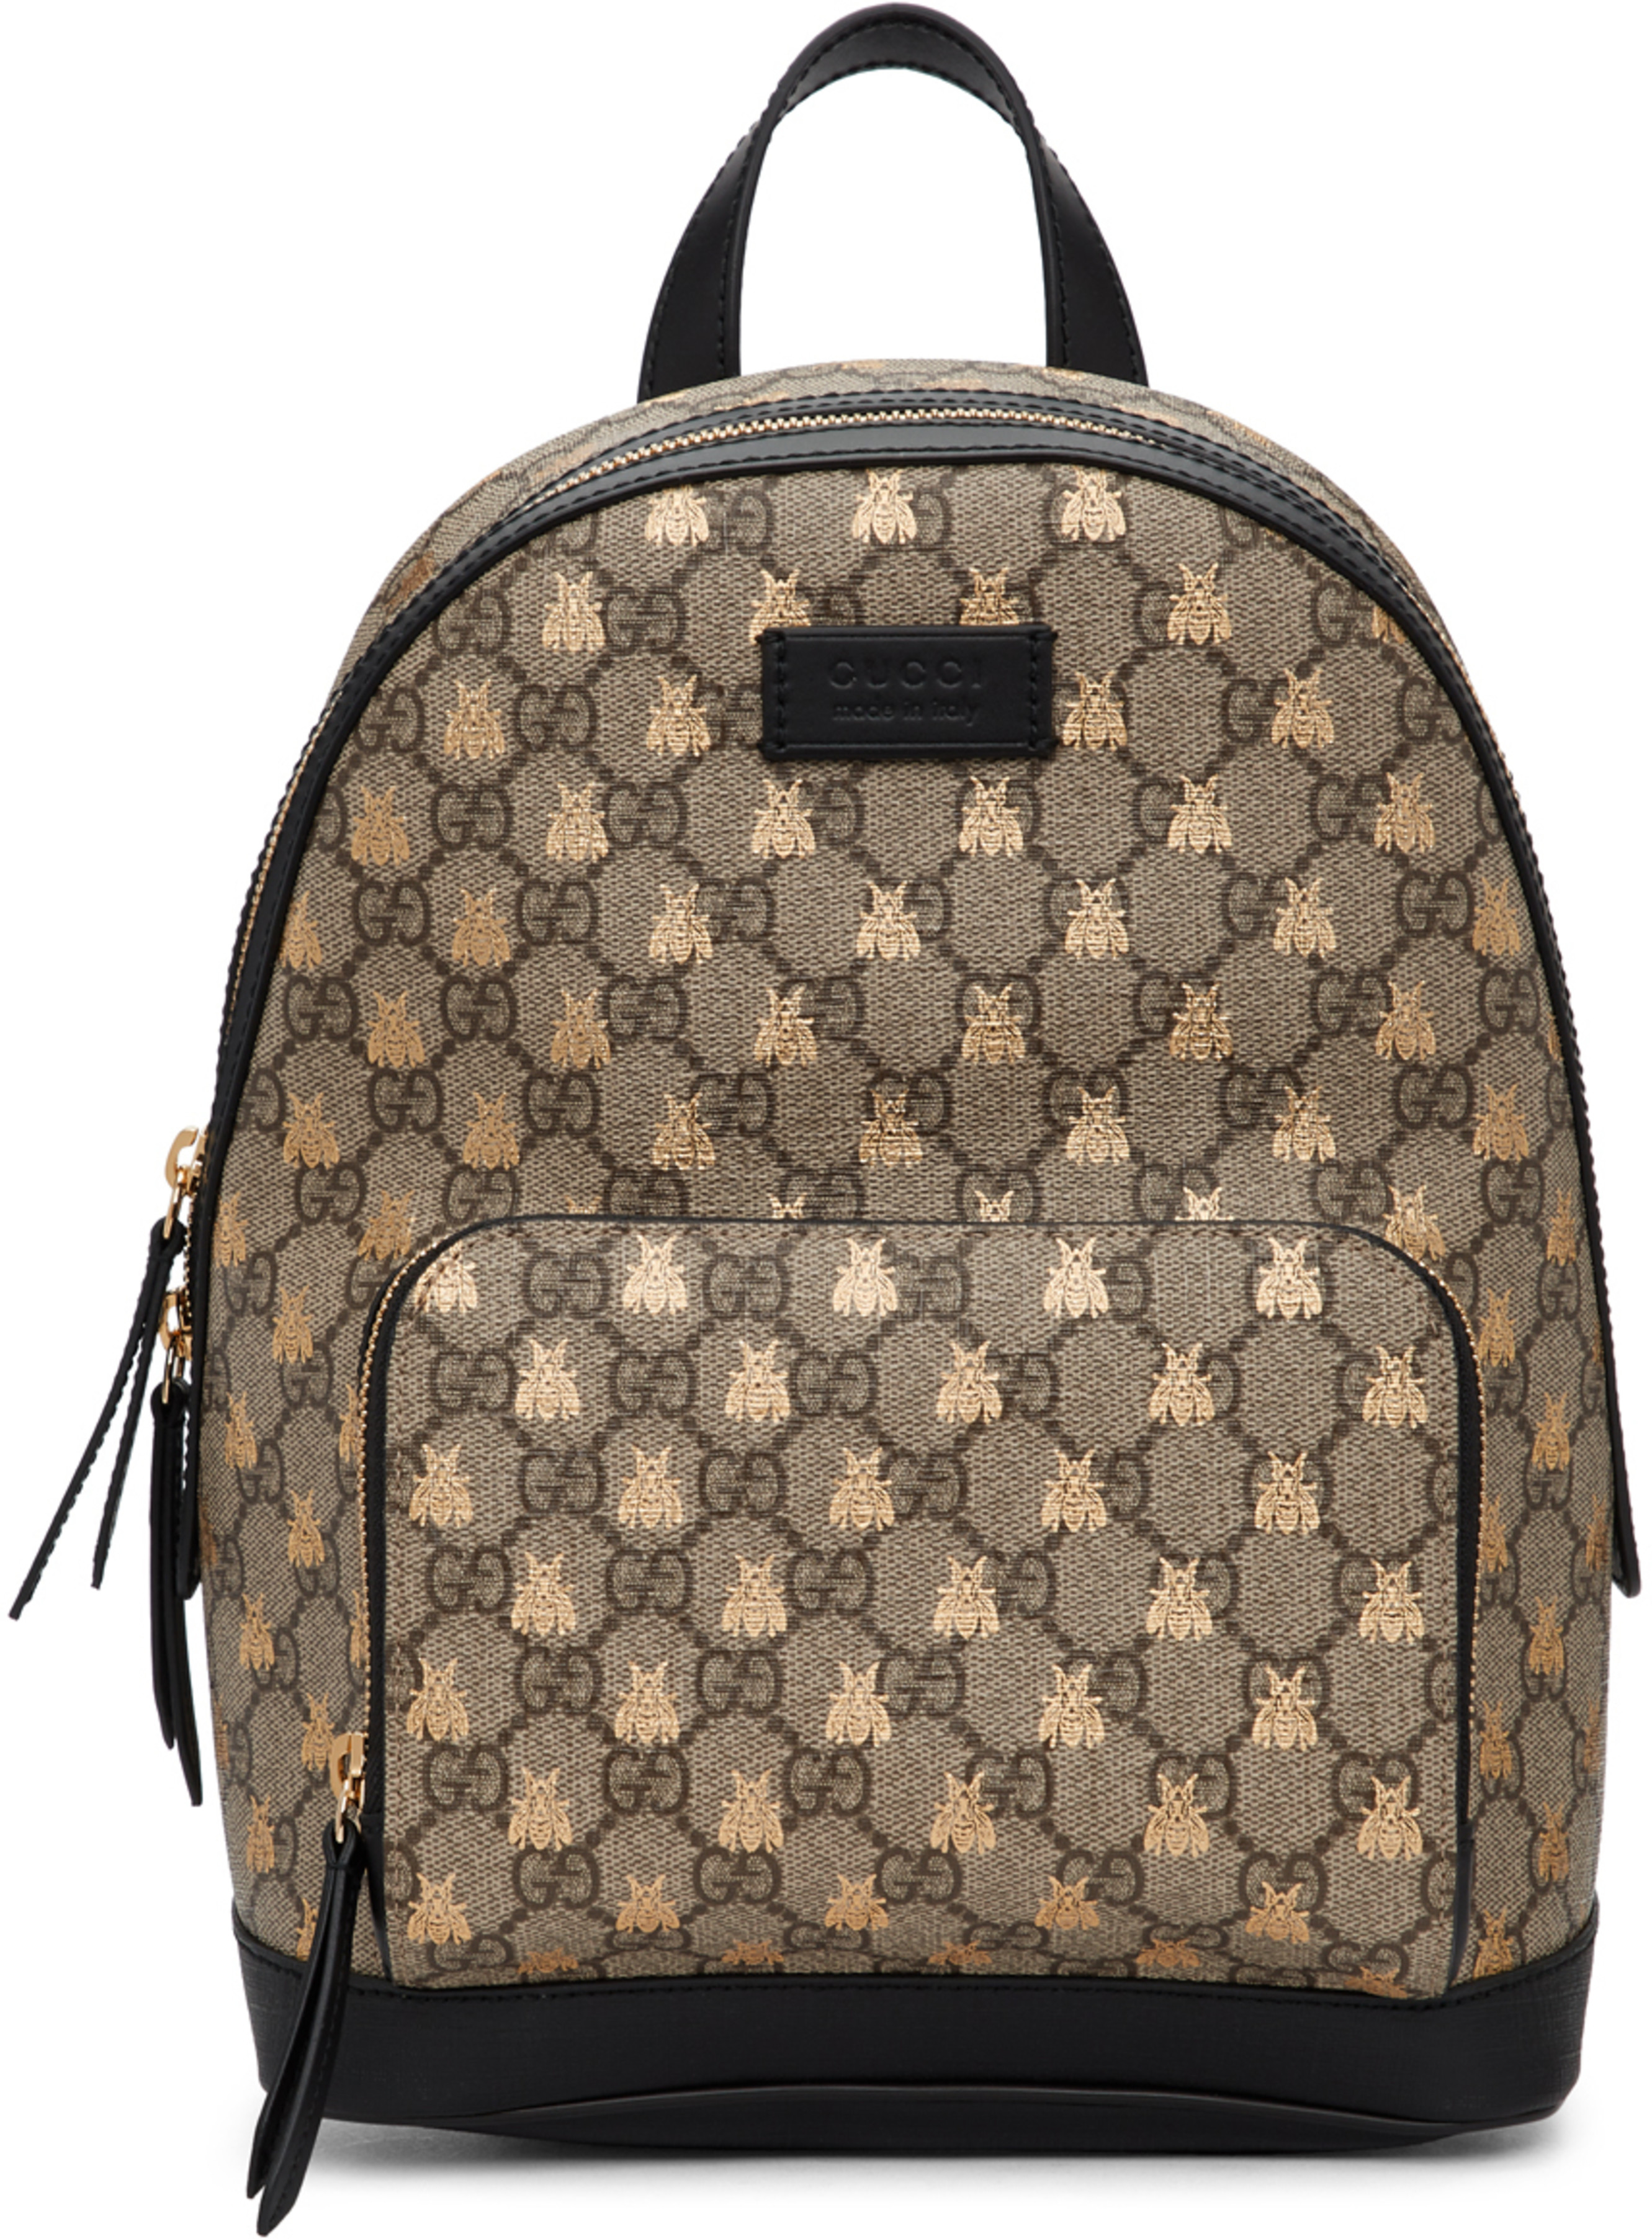 aa41ac687a9d Gucci bags for Women